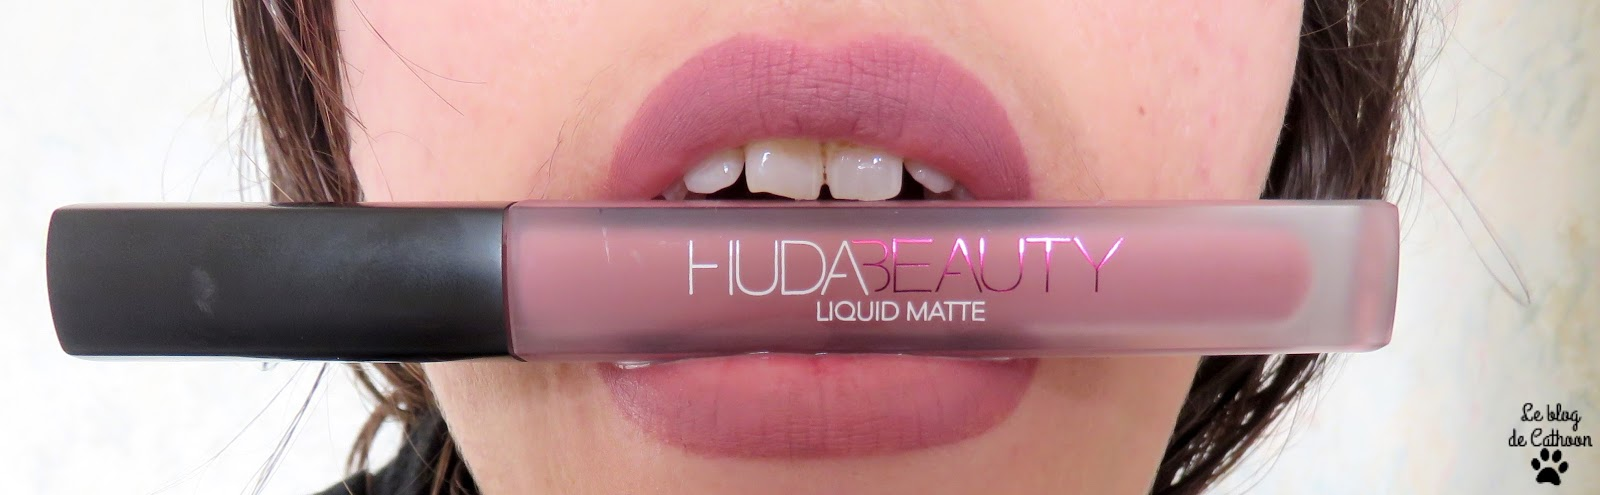 Liquid Matte - Muse - Huda Beauty